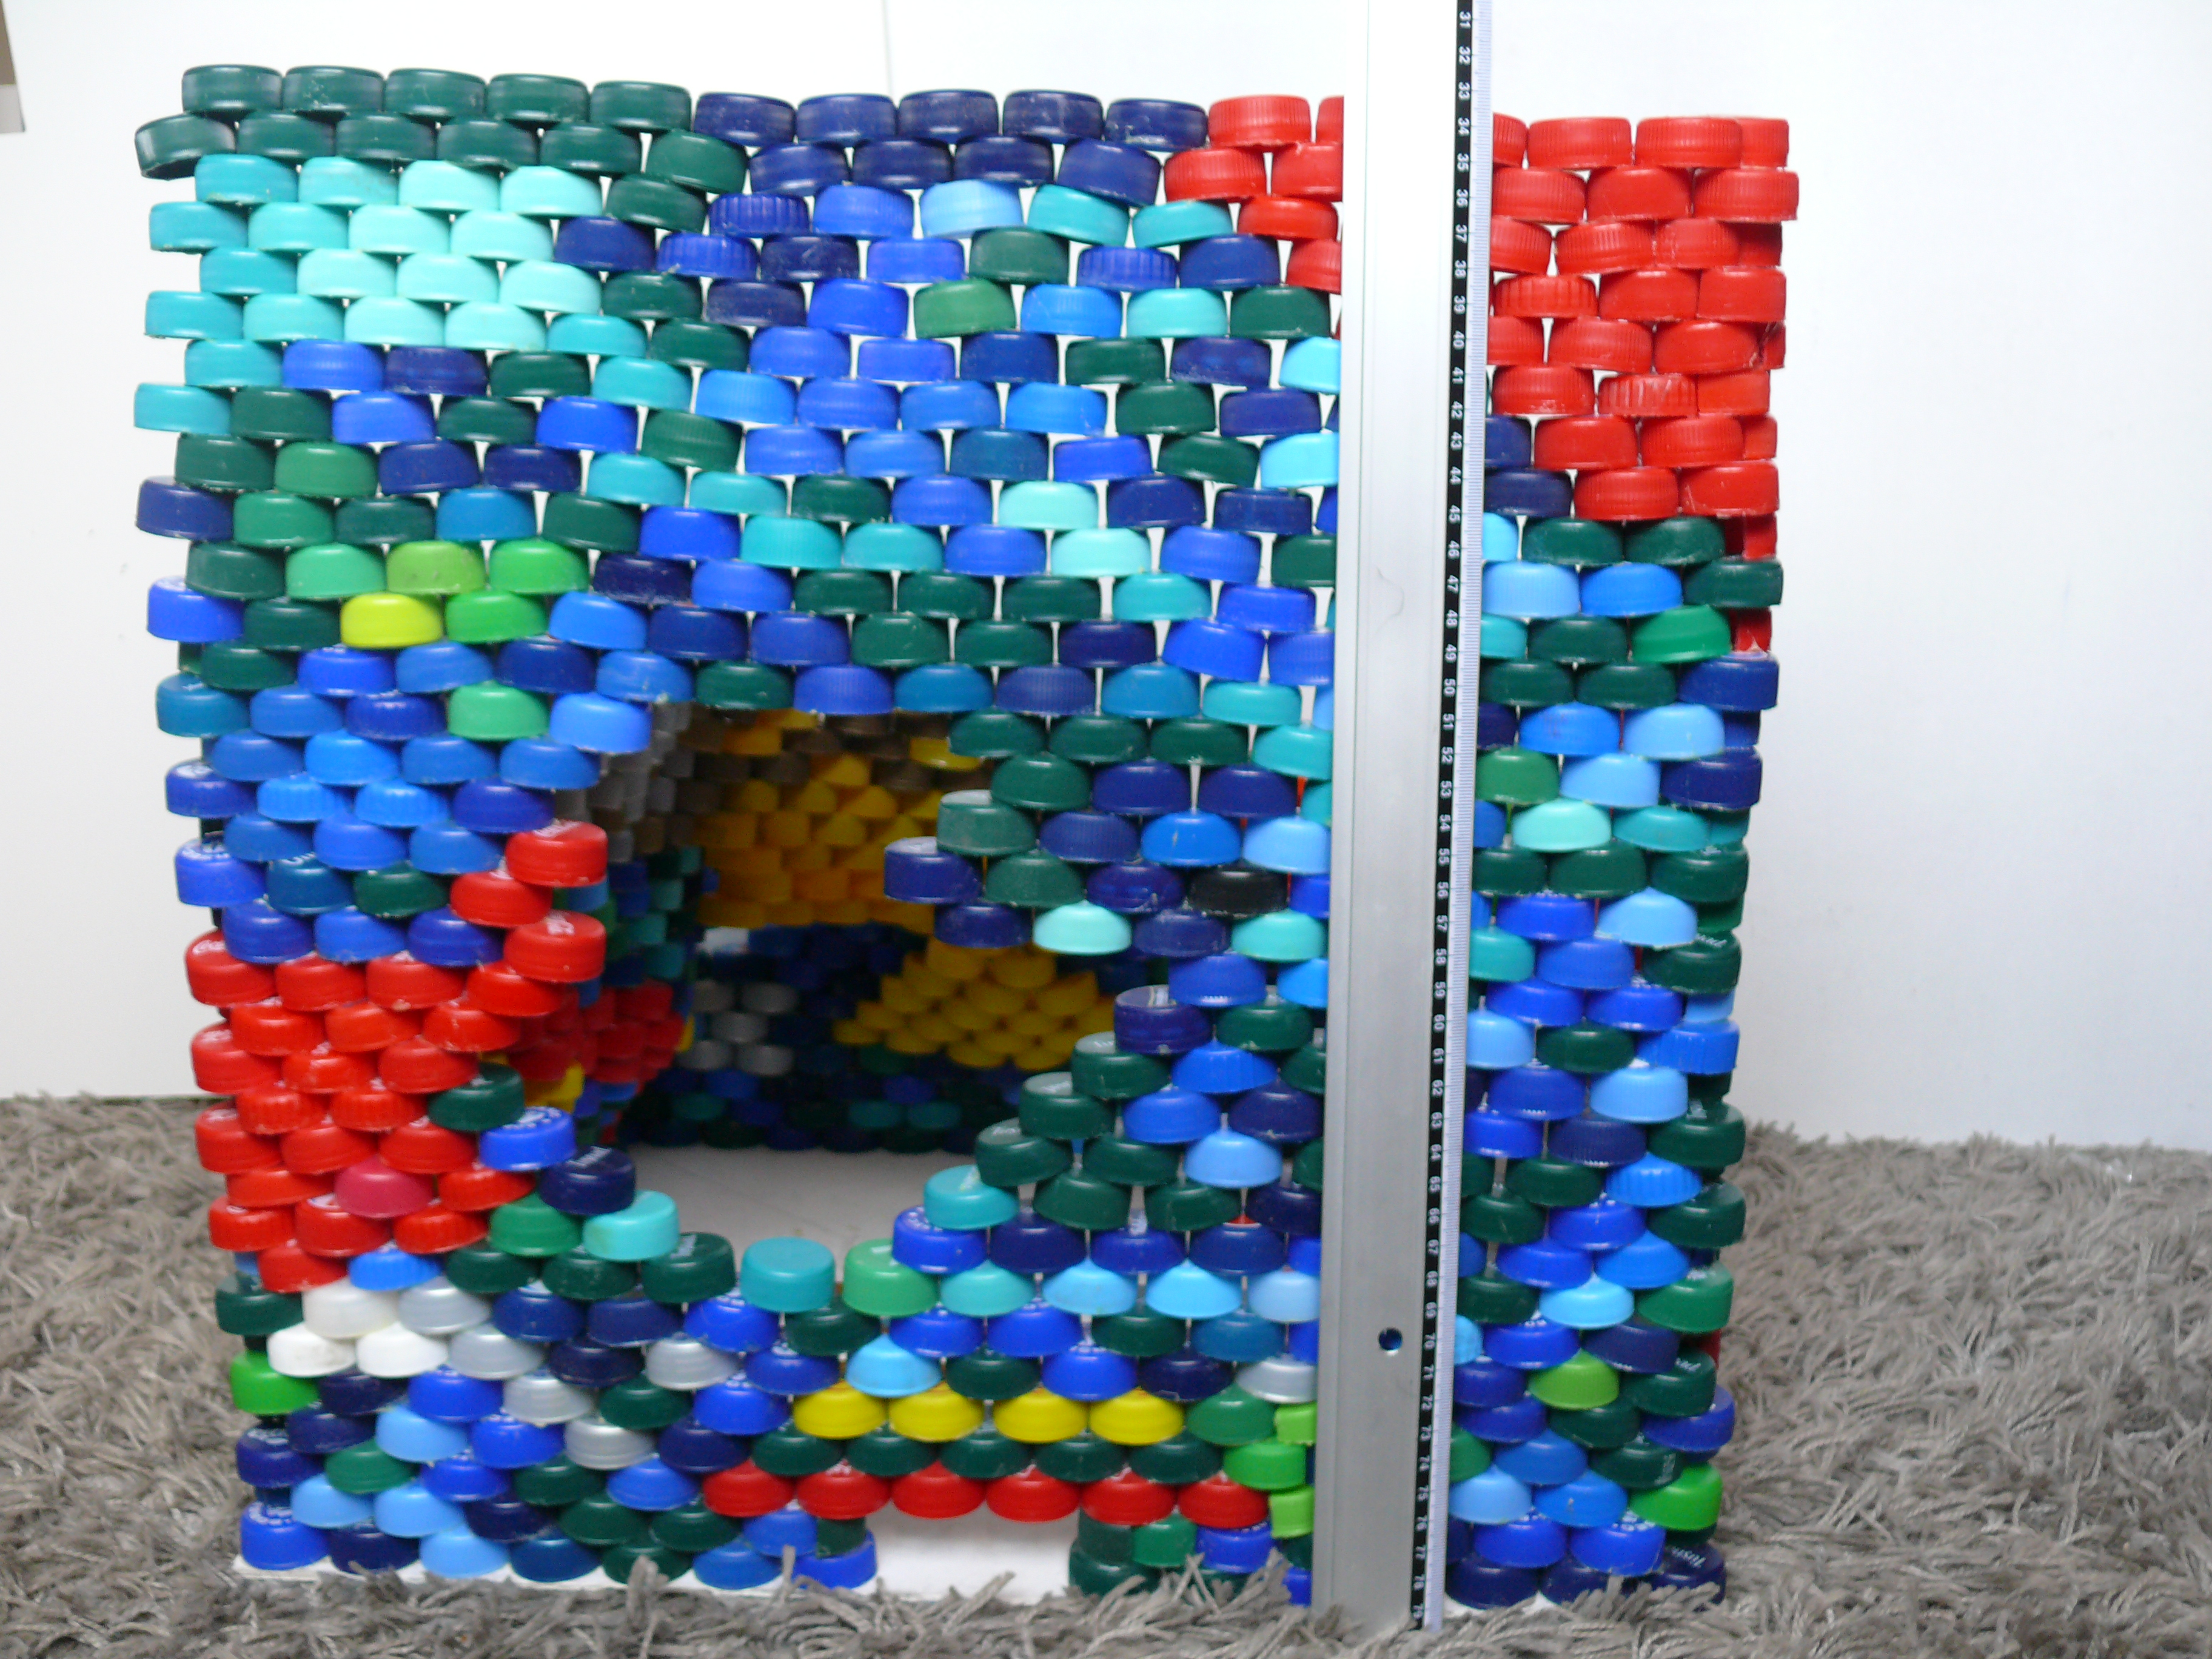 Picture of Lamp Made Out of 2177 Plastic Bottle Caps